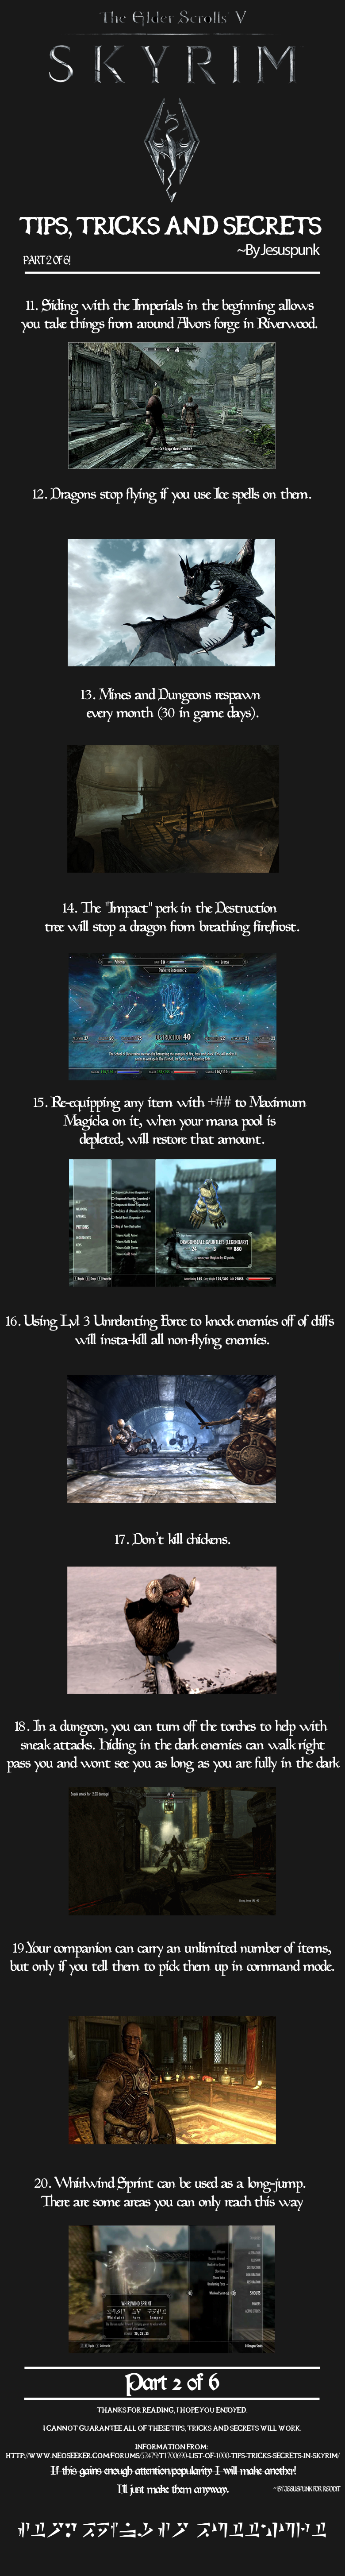 skyrim-tips-and-tricks